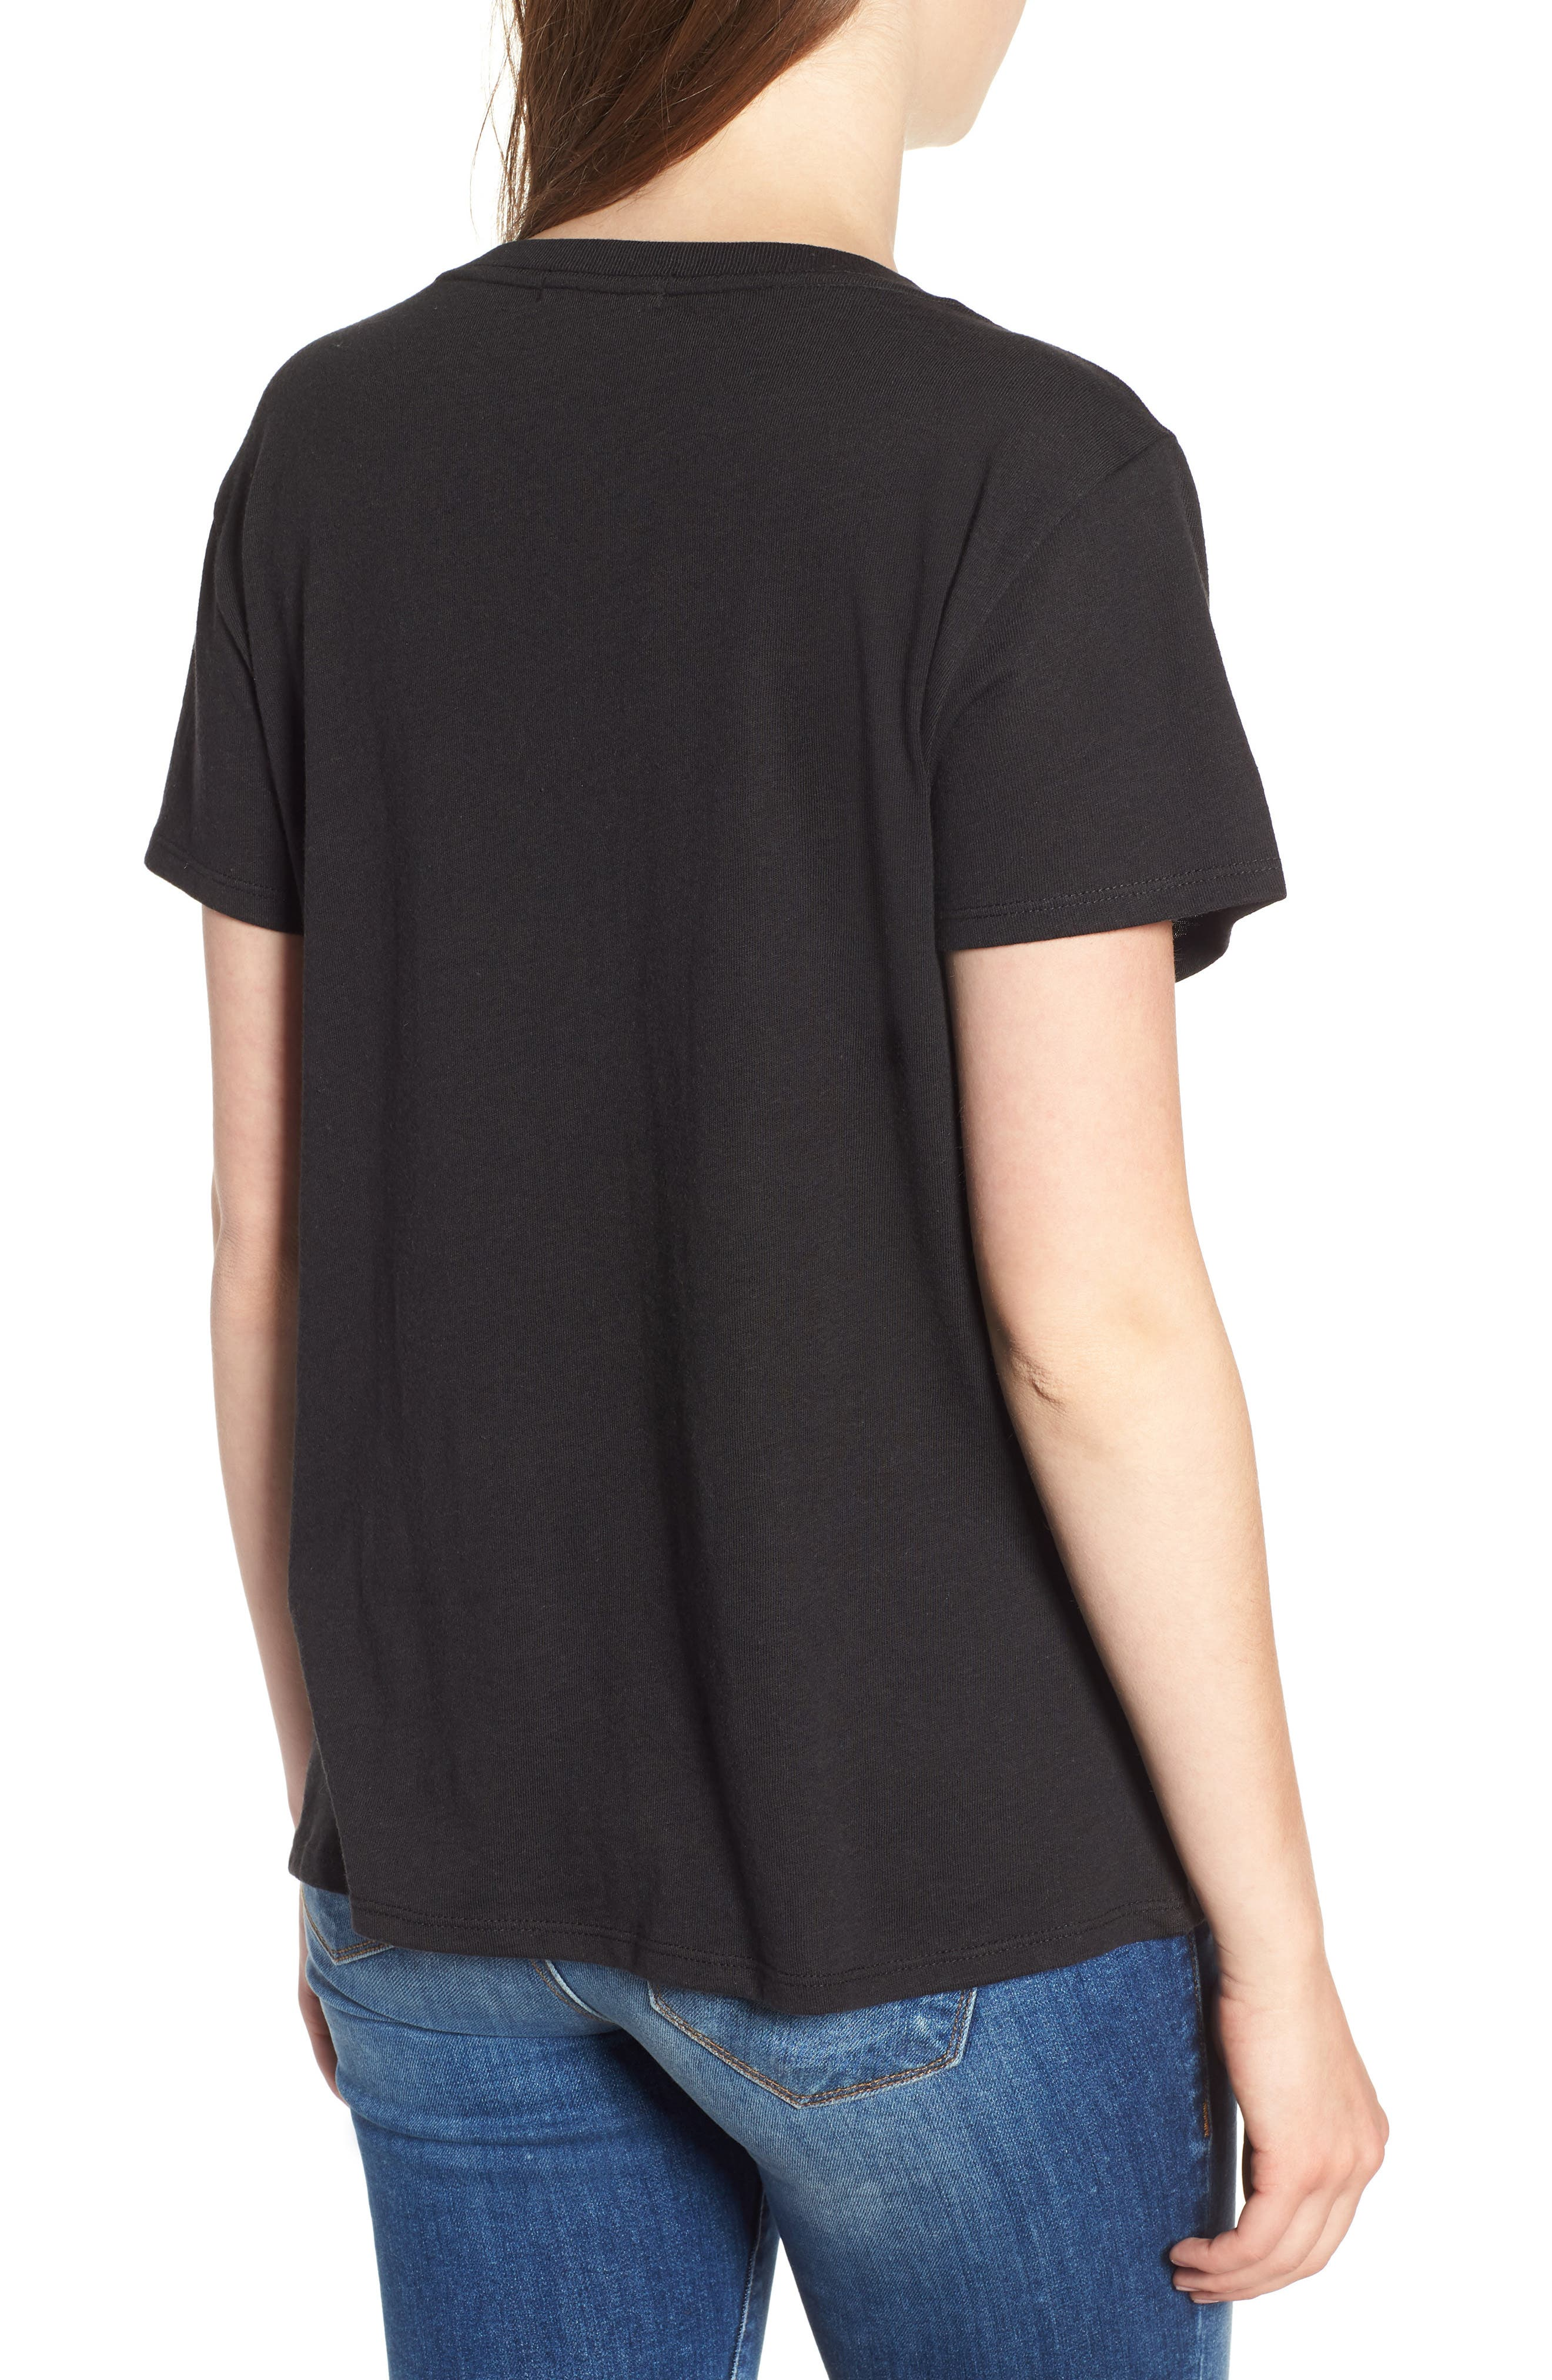 Ladies Who Brunch Slouched Tee,                             Alternate thumbnail 2, color,                             001